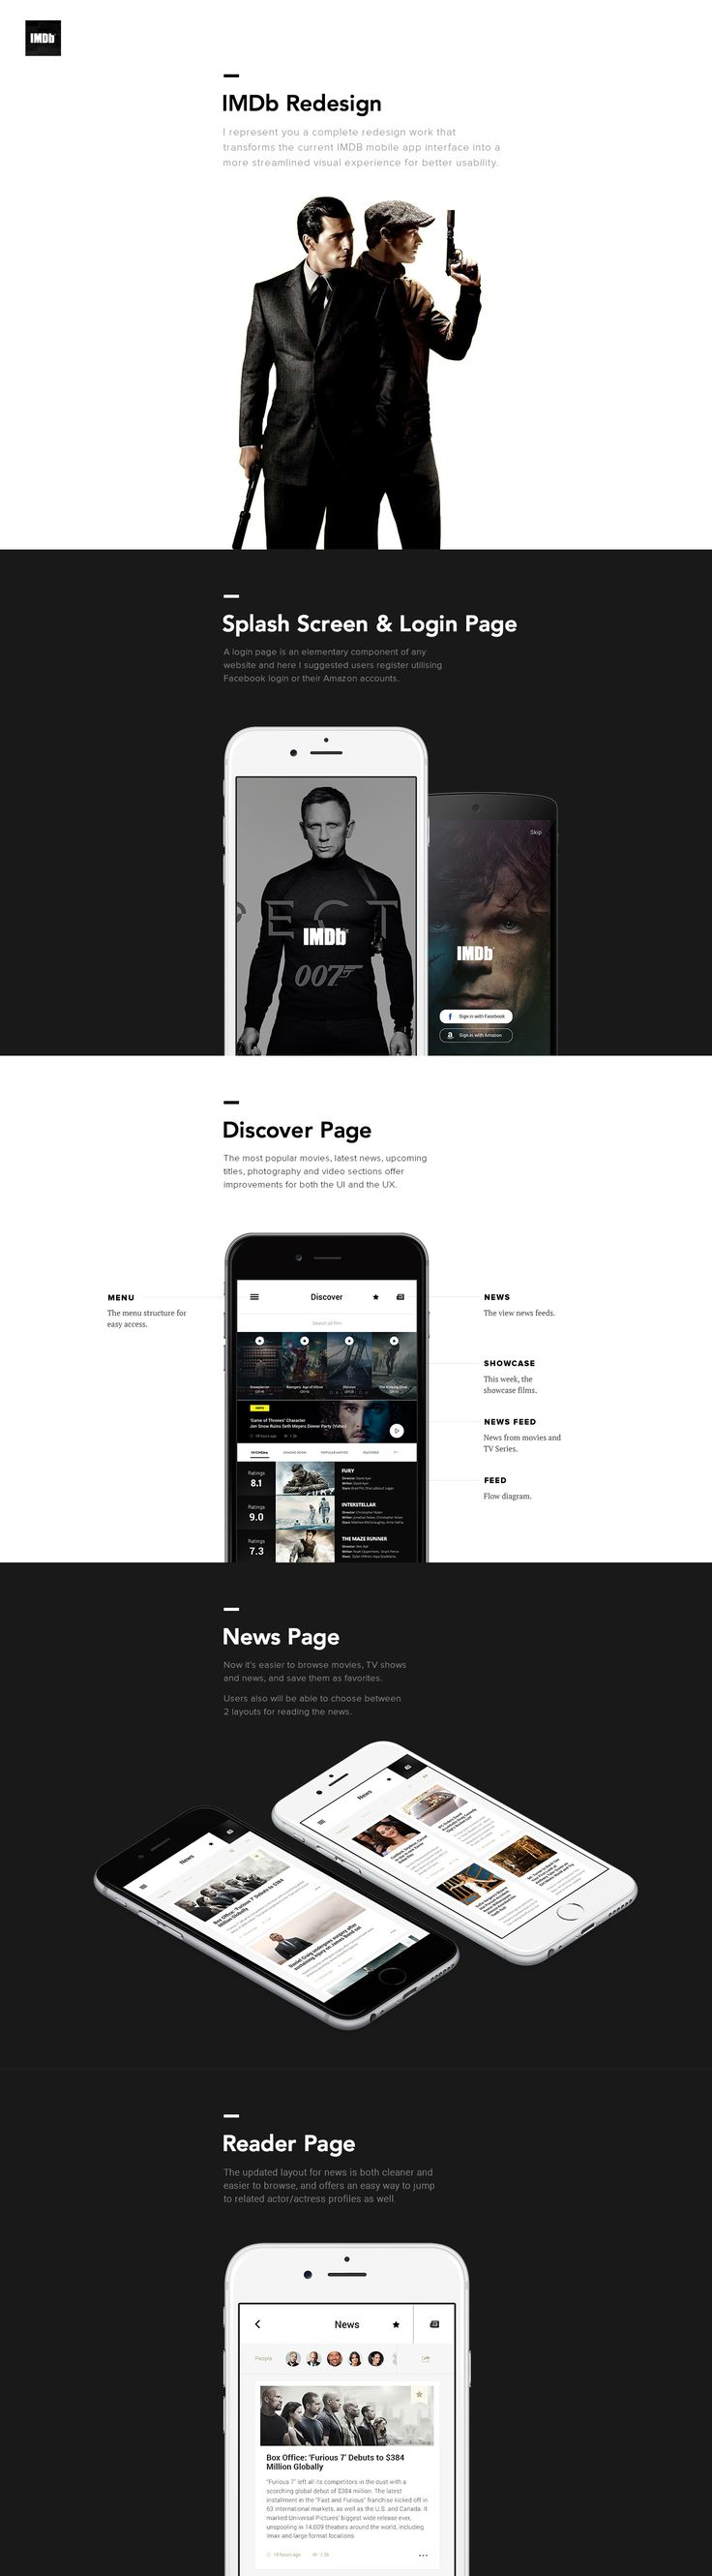 I represent you a complete redesign work that transforms the current IMDB mobile app interface into a more streamlined visual experience for better usability.